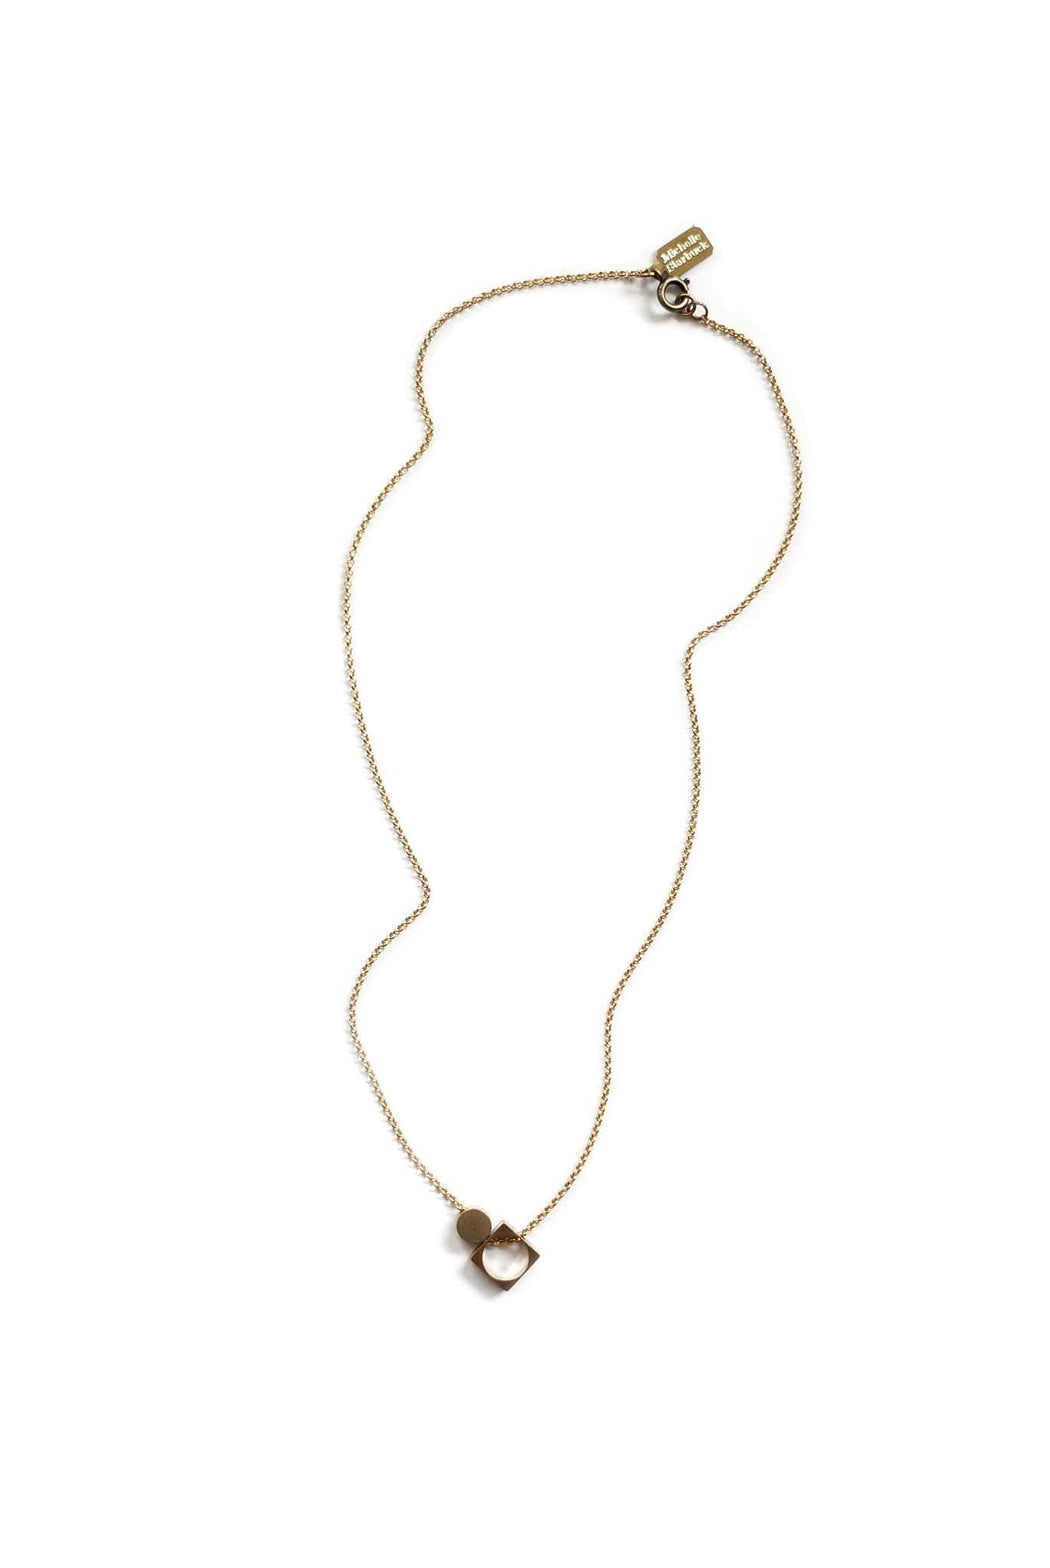 Asymmetrical Signature Necklace - Michelle Starbuck Designs